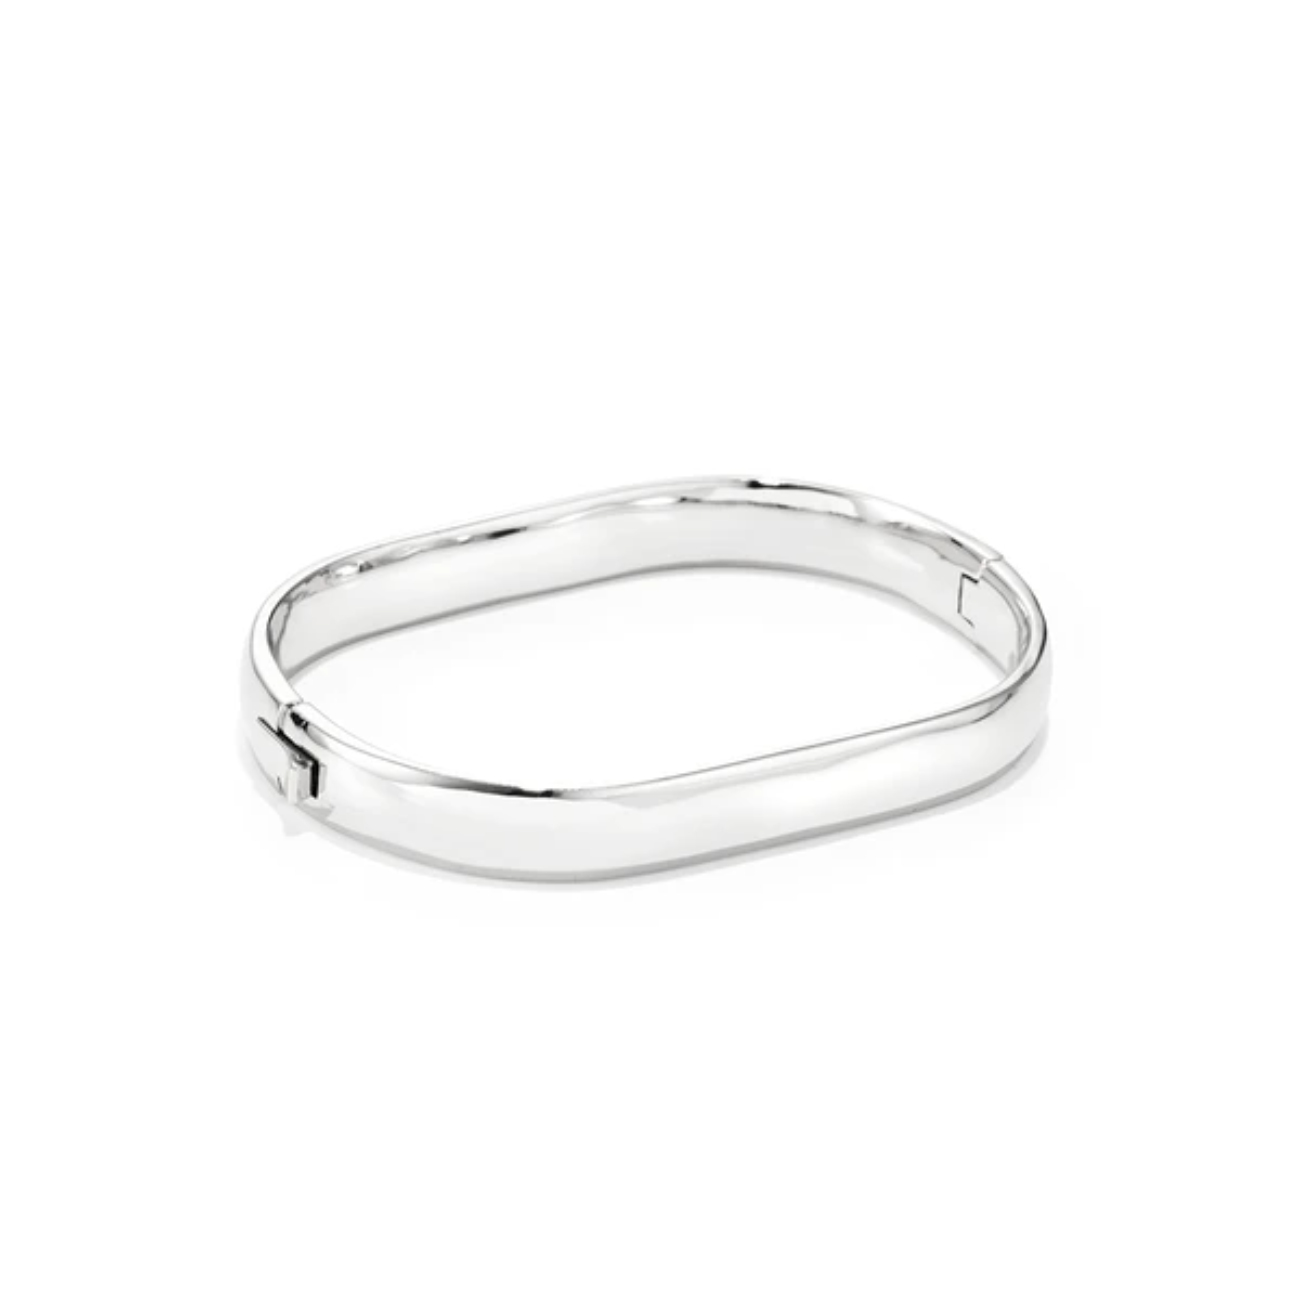 JENNY BIRD - STEVIE BANGLE IN SILVER